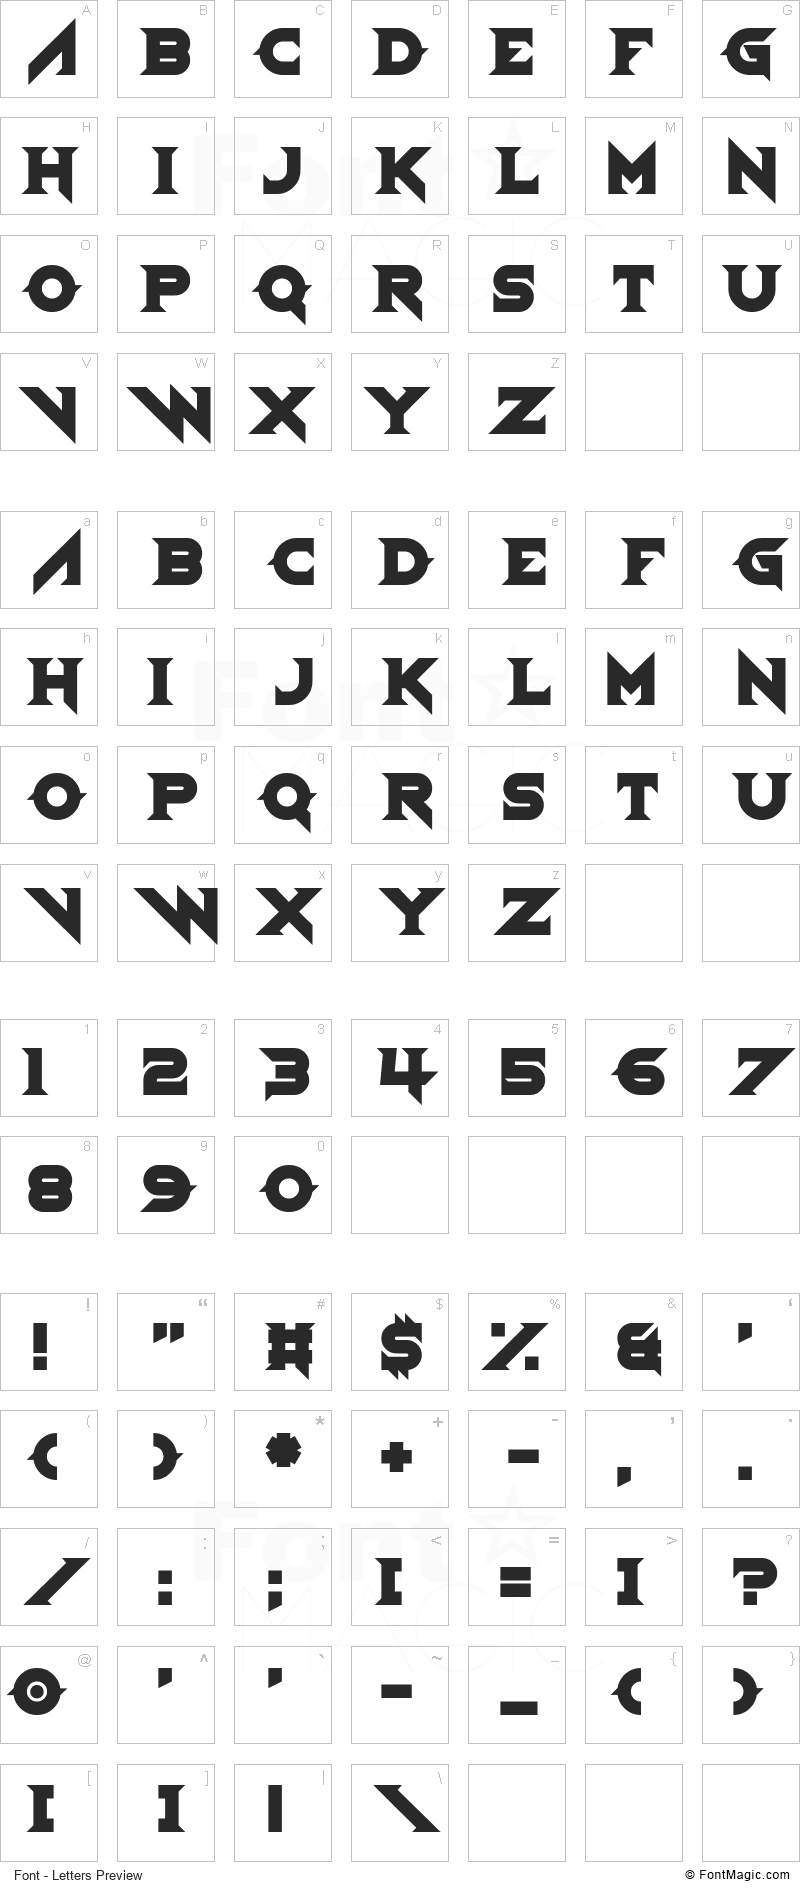 Demoness Font - All Latters Preview Chart